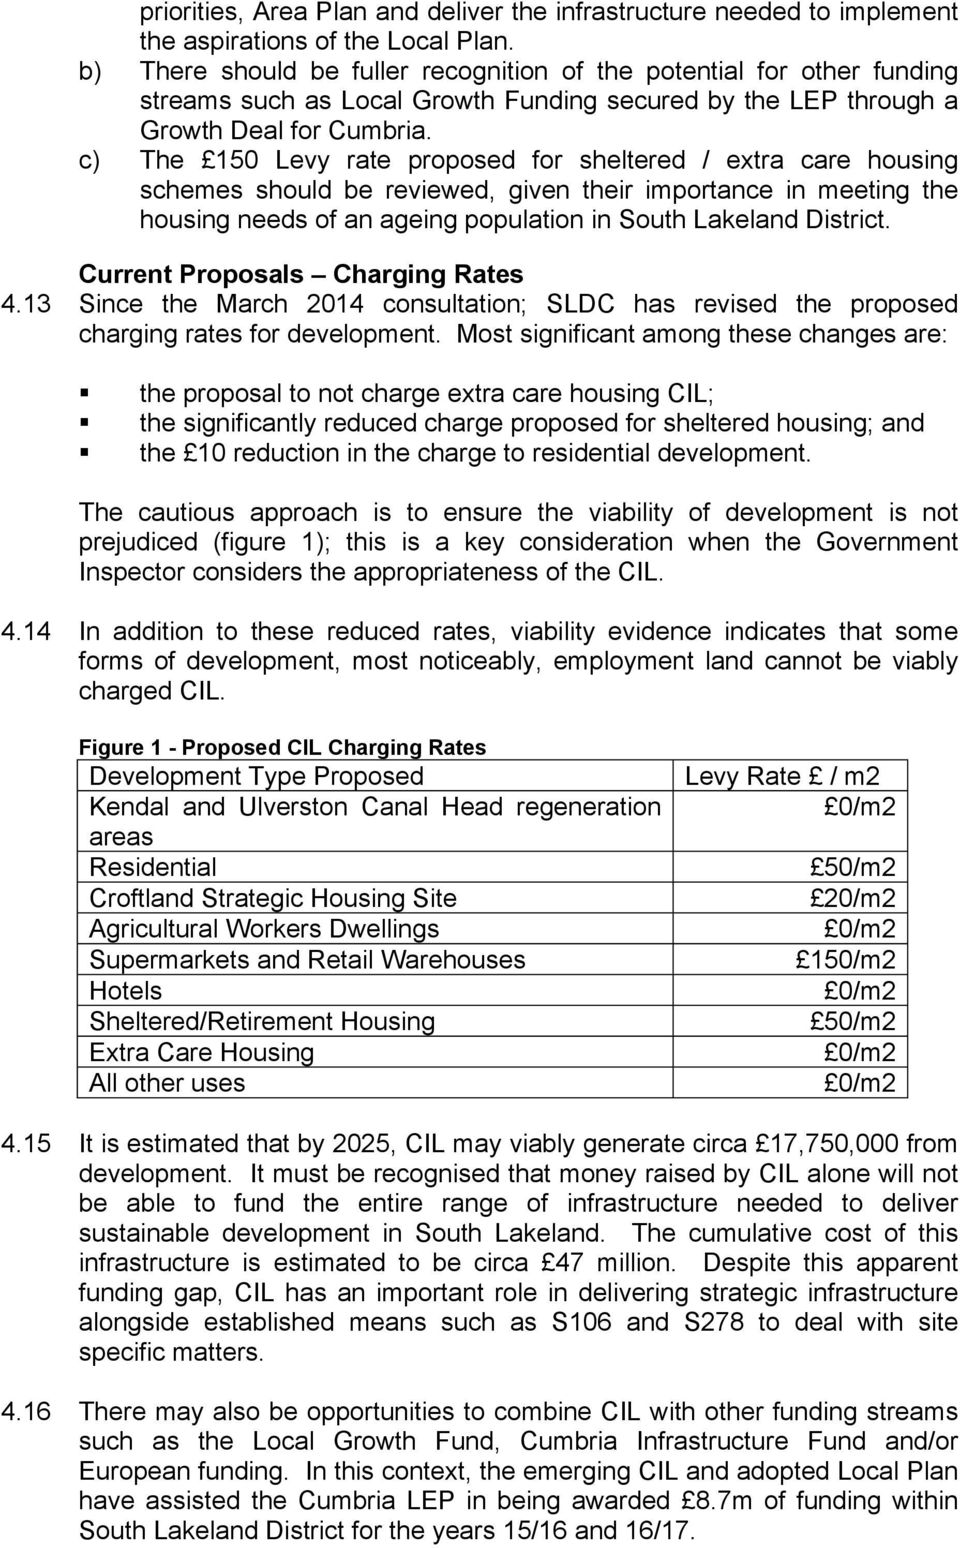 c) The 150 Levy rate proposed for sheltered / extra care housing schemes should be reviewed, given their importance in meeting the housing needs of an ageing population in South Lakeland District.